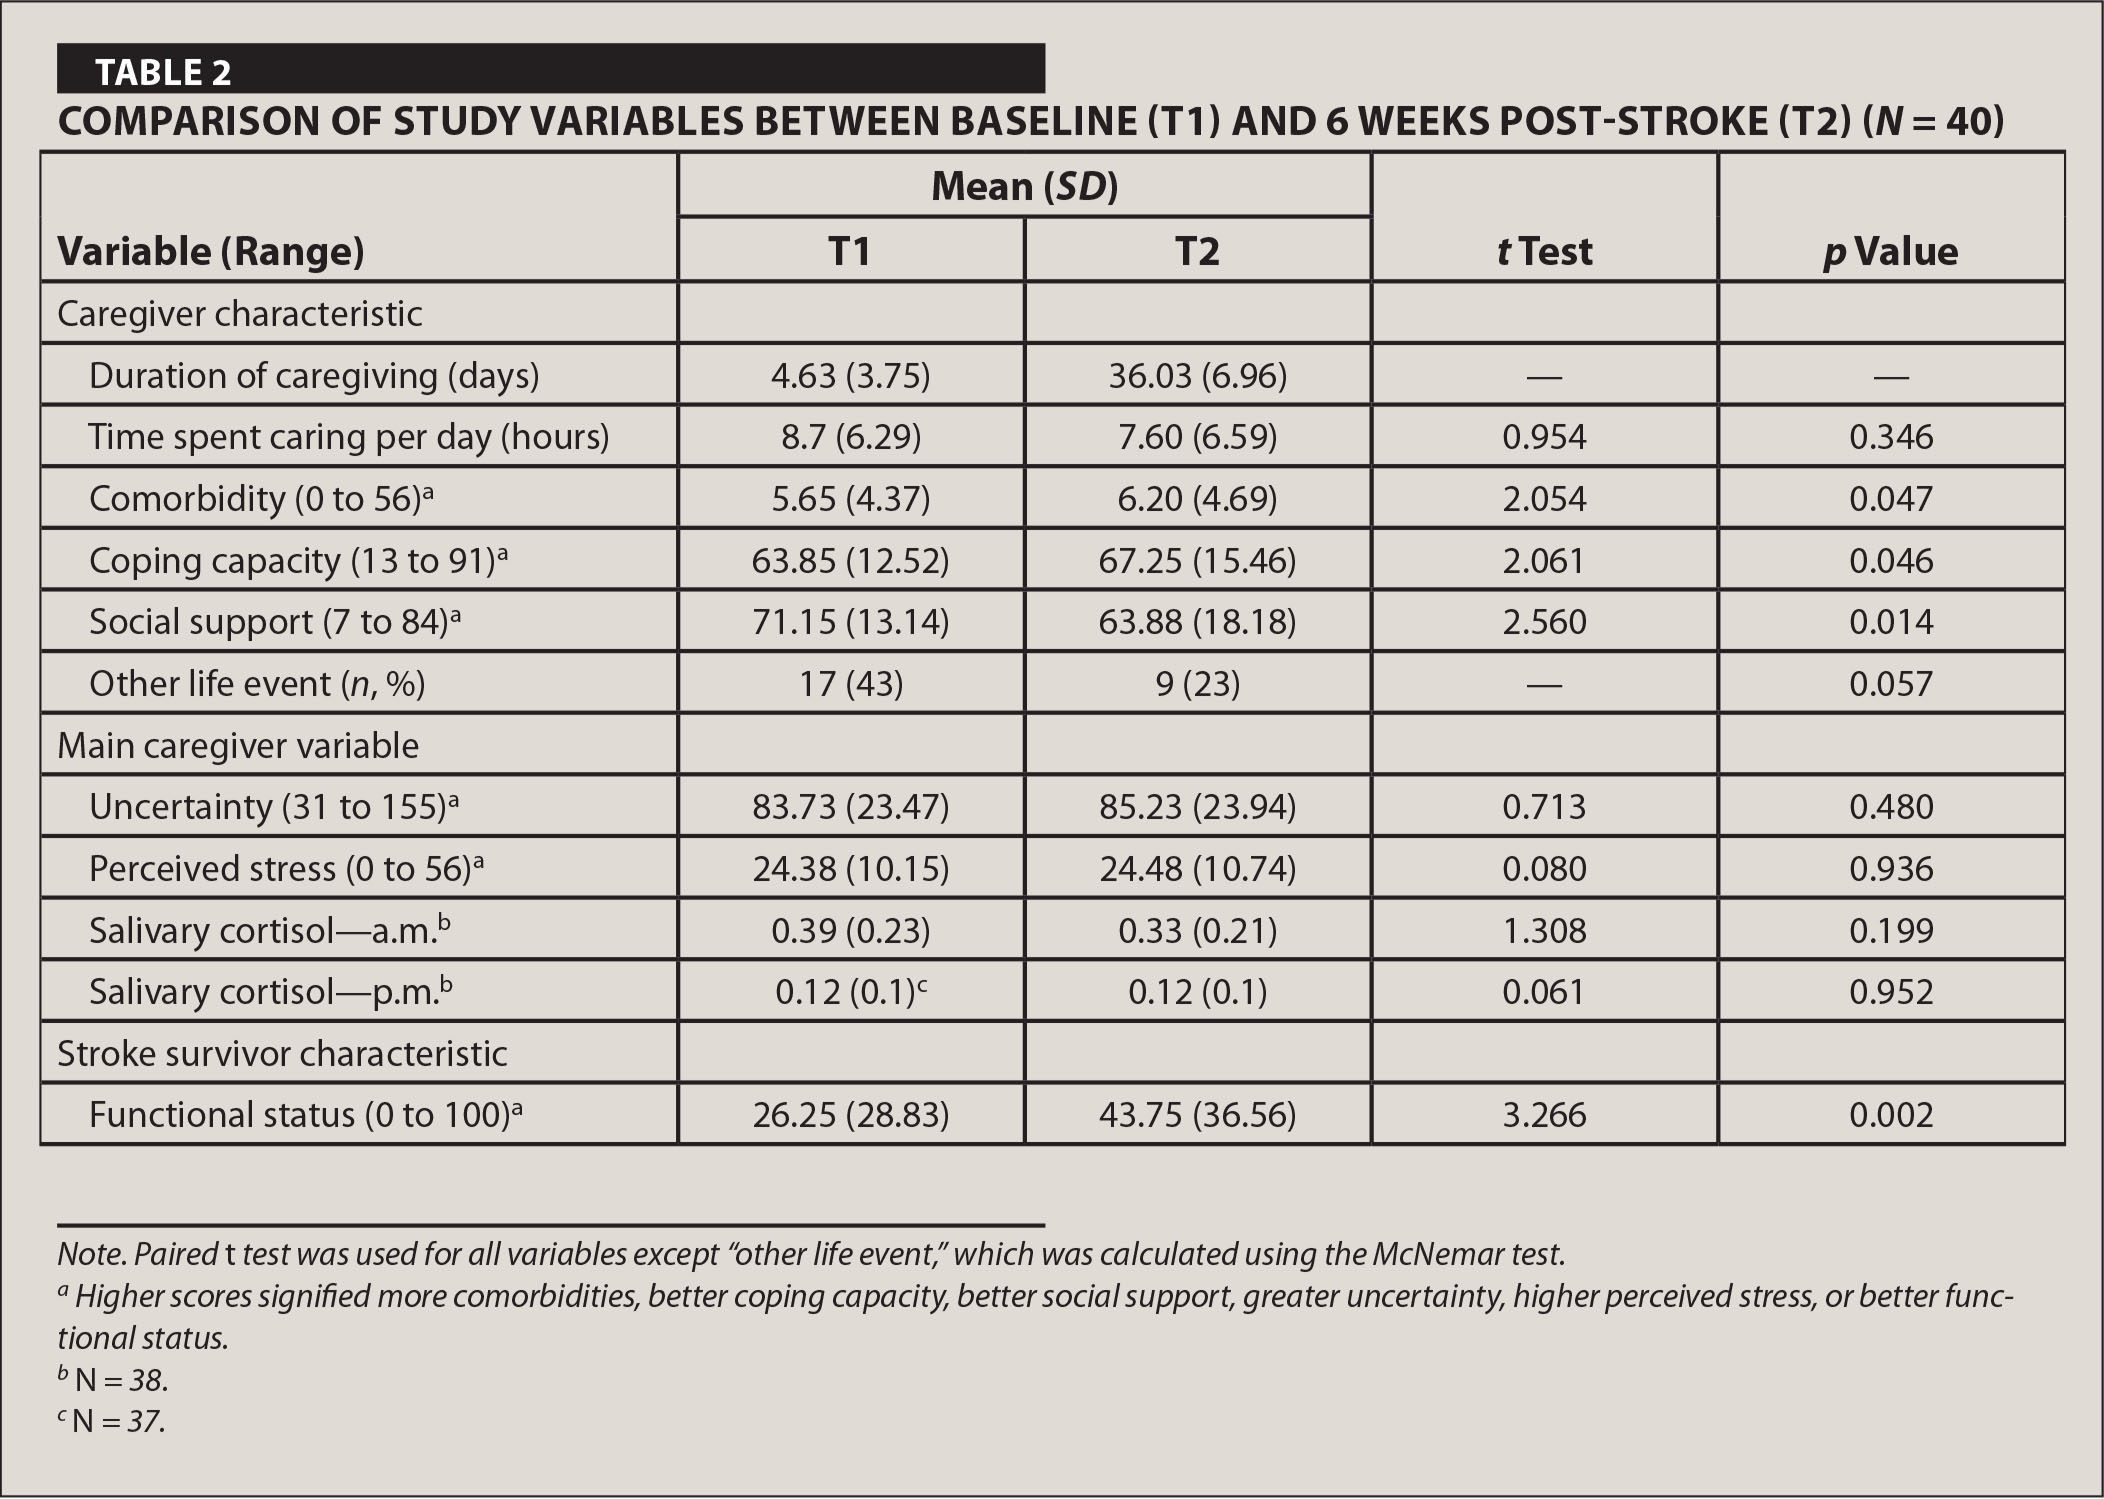 Comparison of Study Variables between Baseline (T1) and 6 Weeks Post-Stroke (T2) (N = 40)